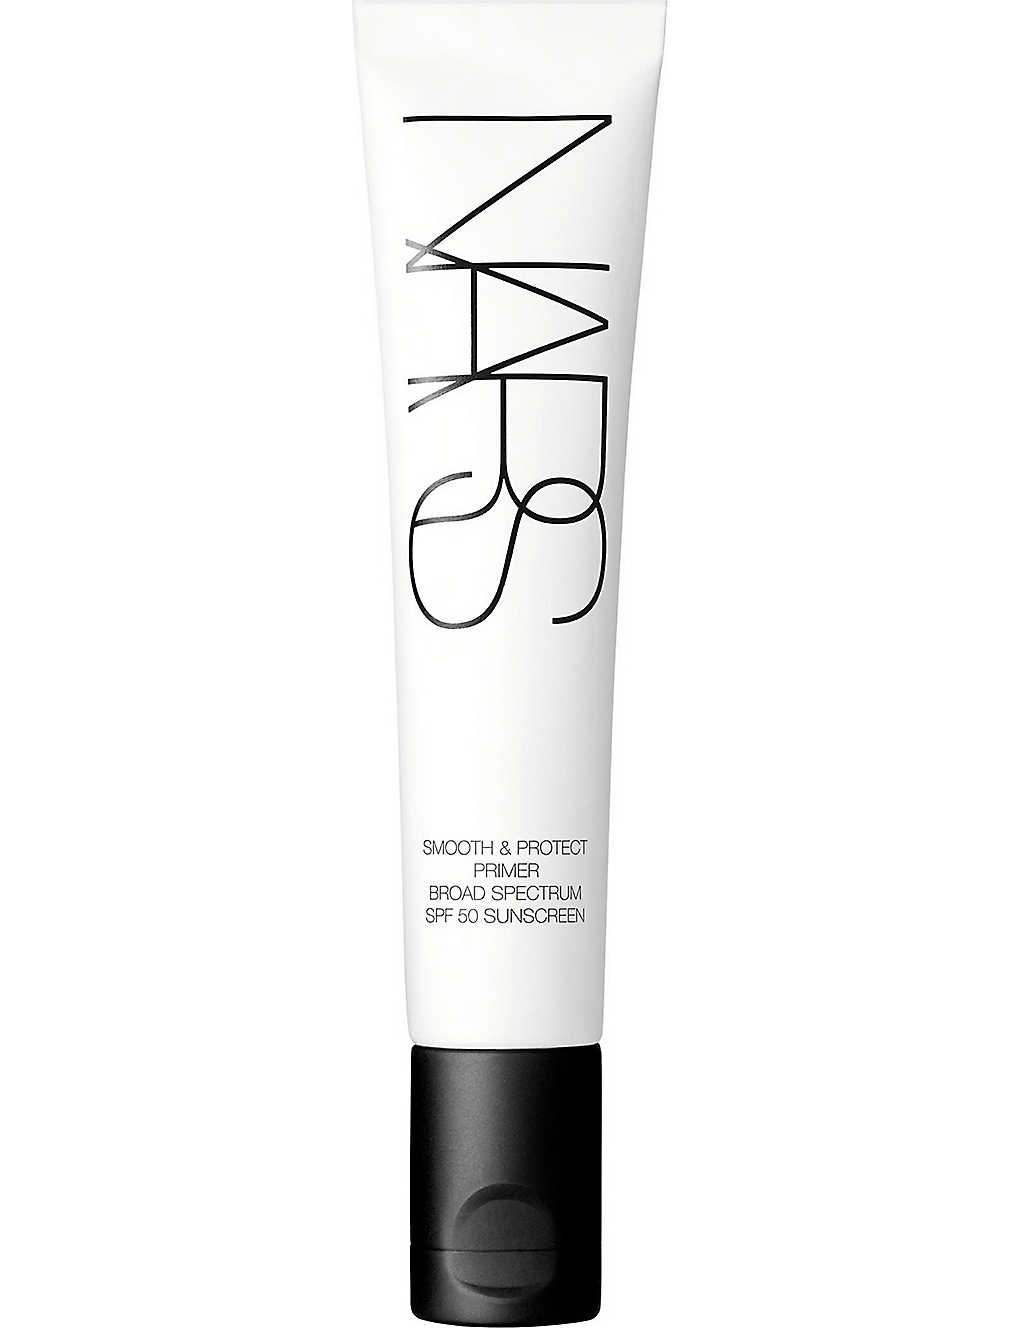 NARS: Smooth & Protect primer SPF50